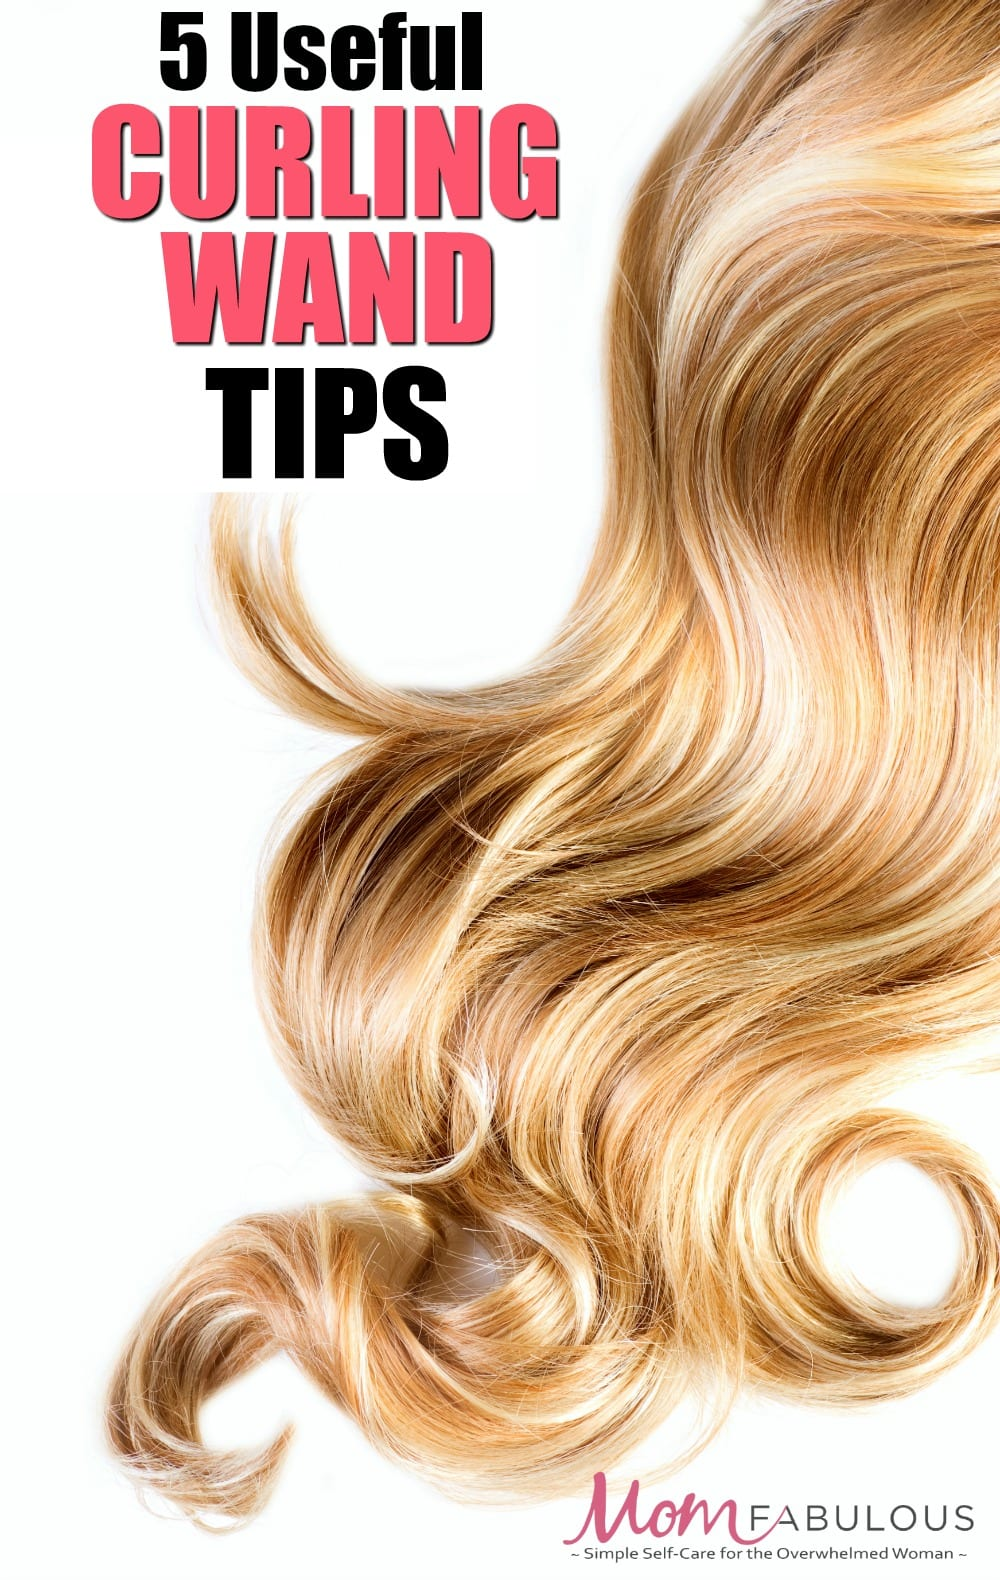 These five curling wand tips will help give you long lasting, healthy and beautiful curls using your curling wand.